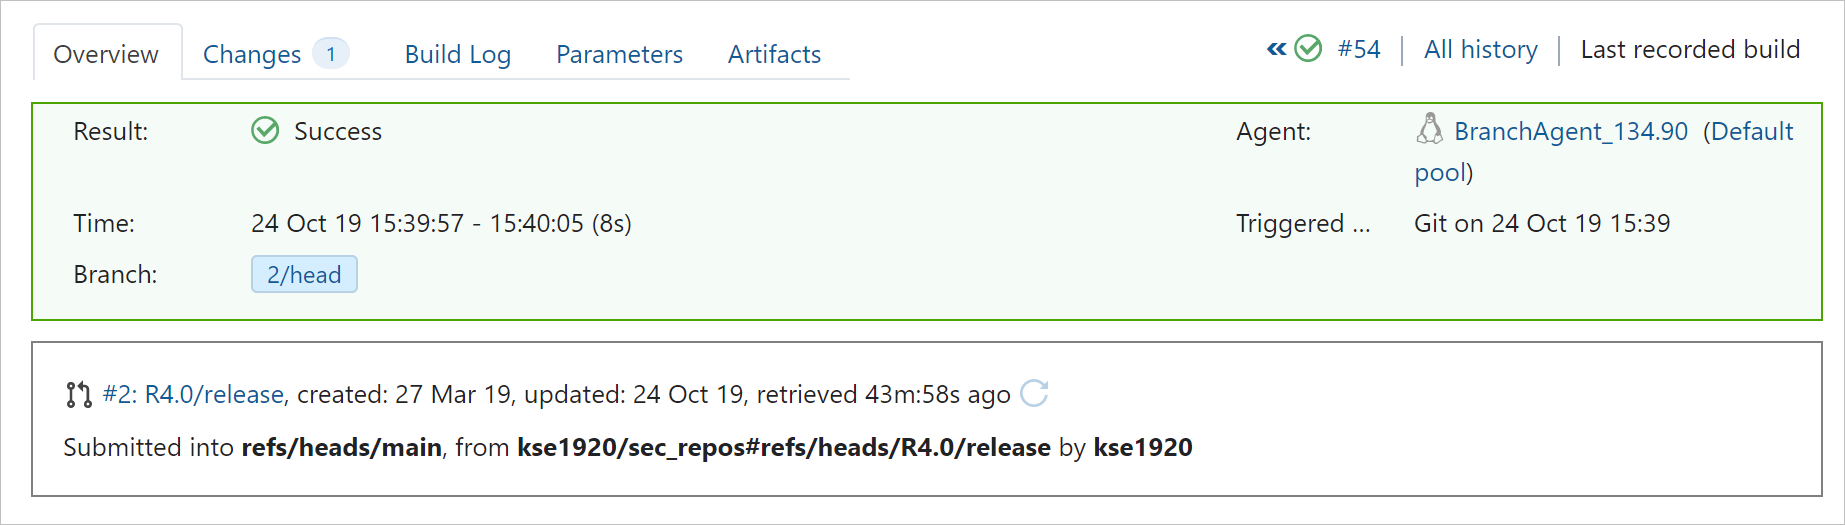 Pull request details